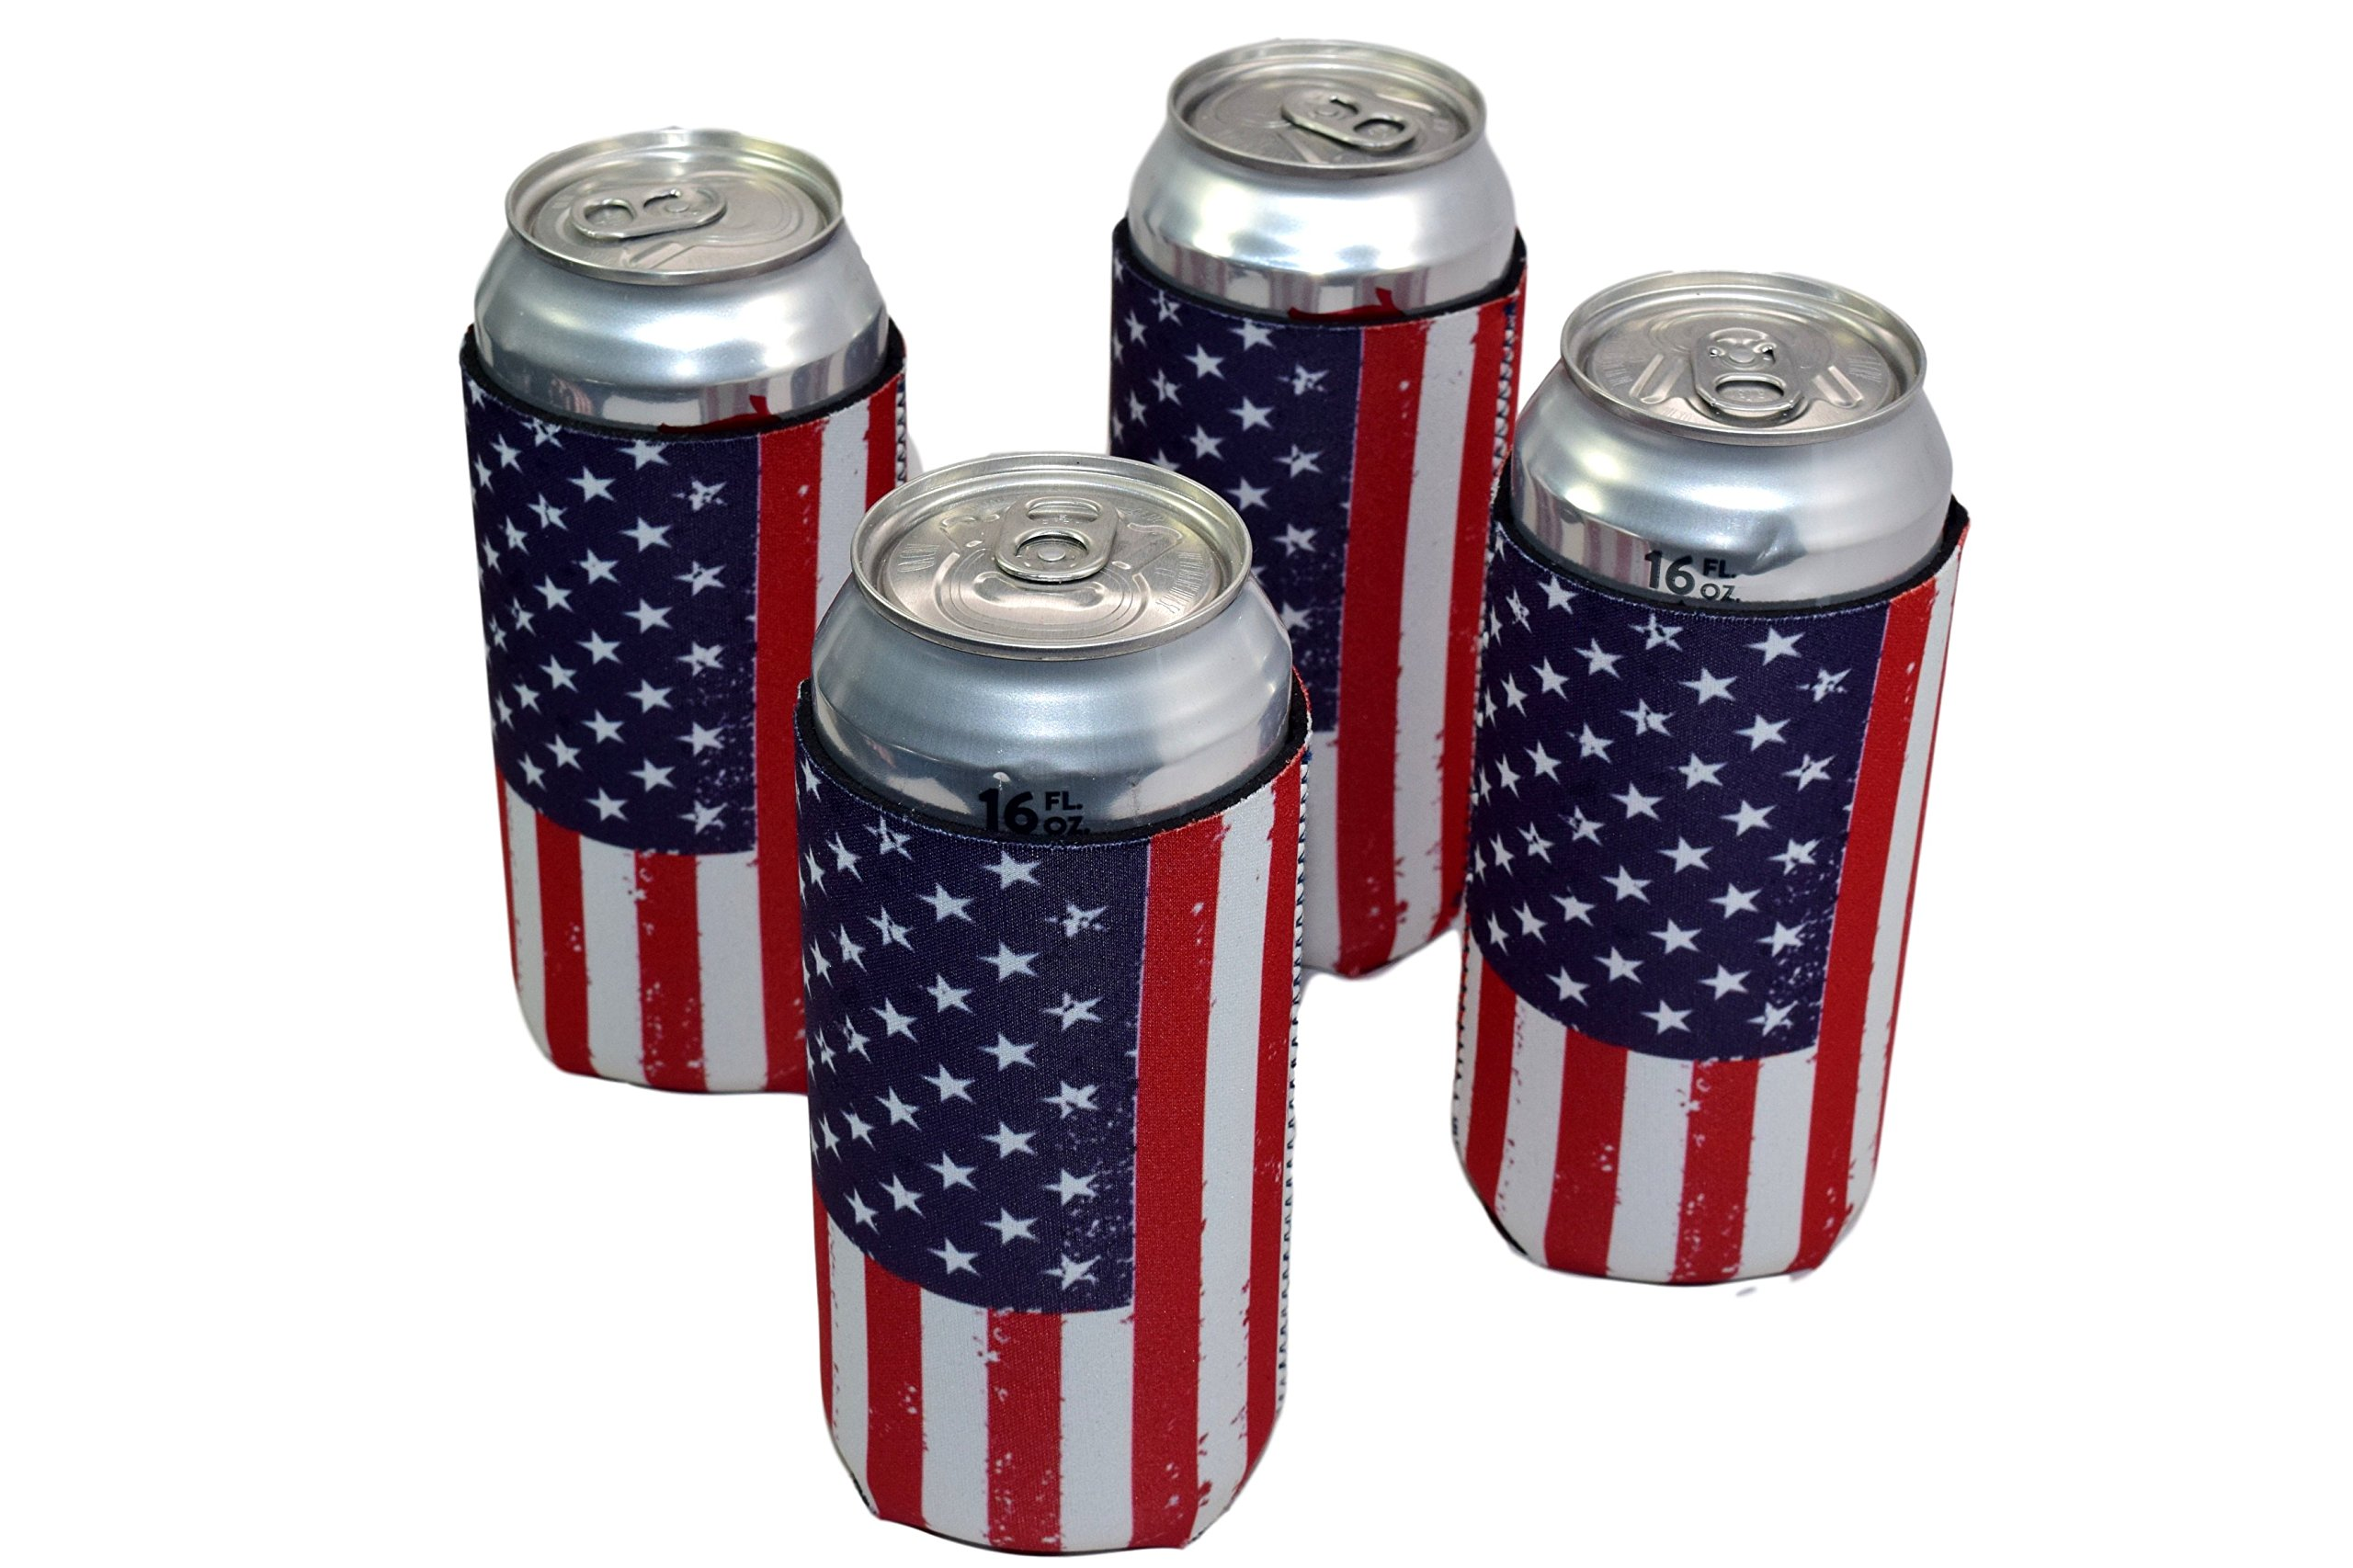 QualityPerfection 6 USA Flag Neoprene Collapsible 16oz Tall Can Coolers Party Drink Beer coolie Coolies Sleeves | Insulated Cooler | Stitched Fabric Edges